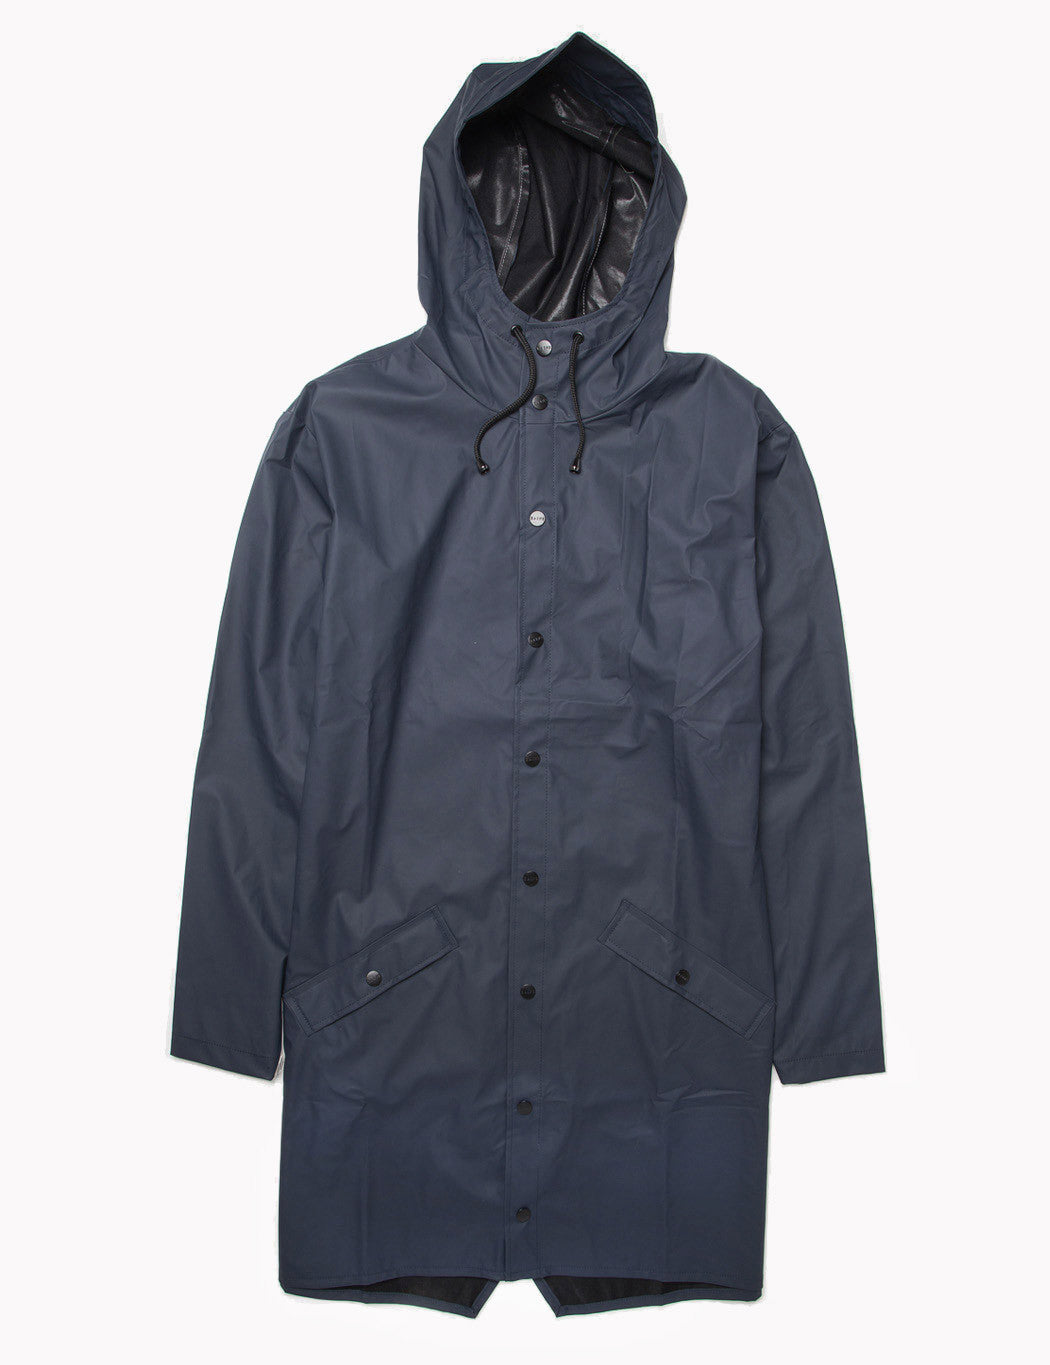 Rains Long Jacket - Navy Blue